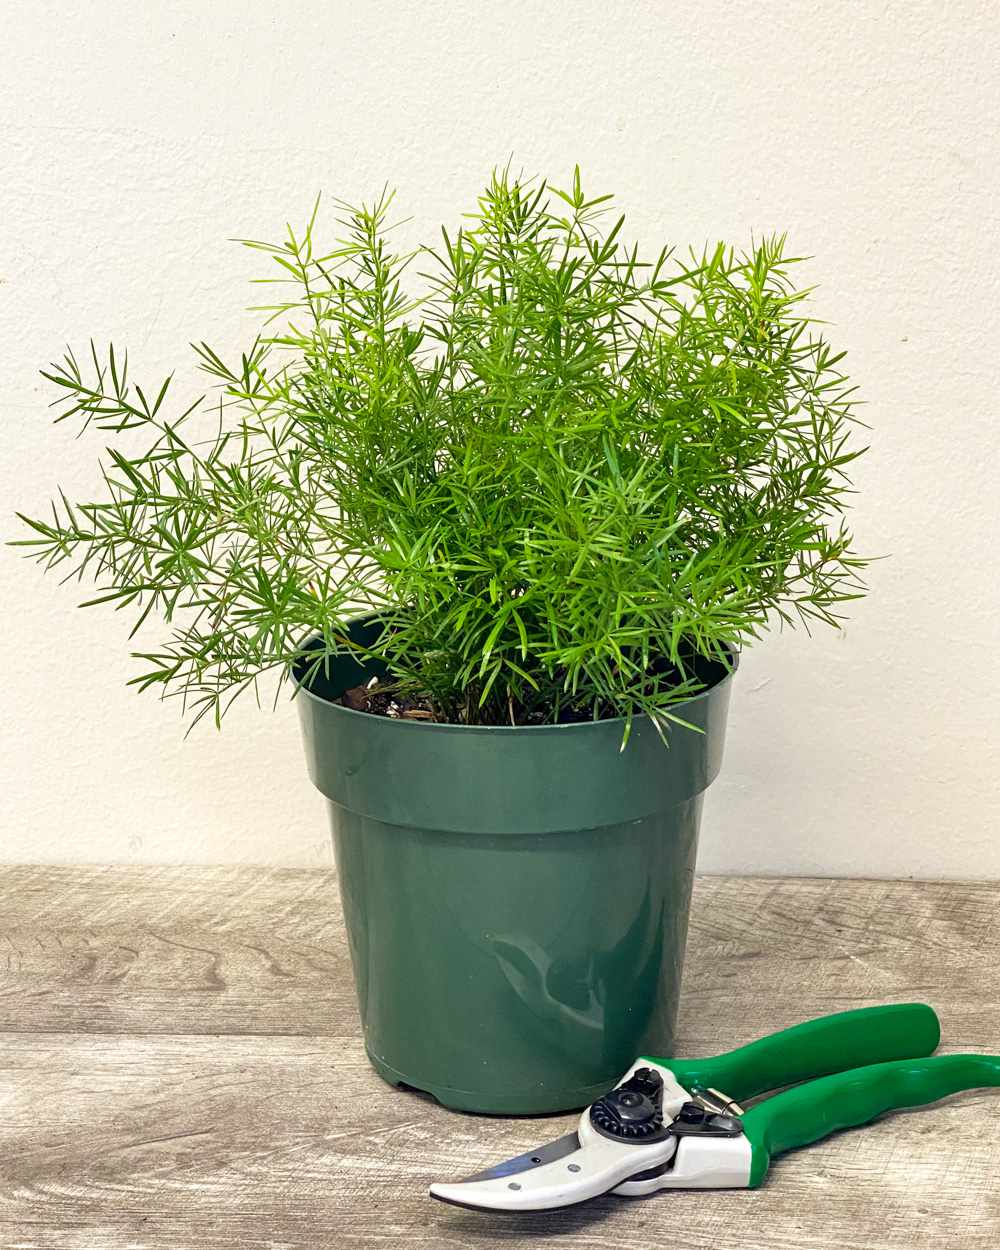 Small asparagus fern in a pot next to clippers